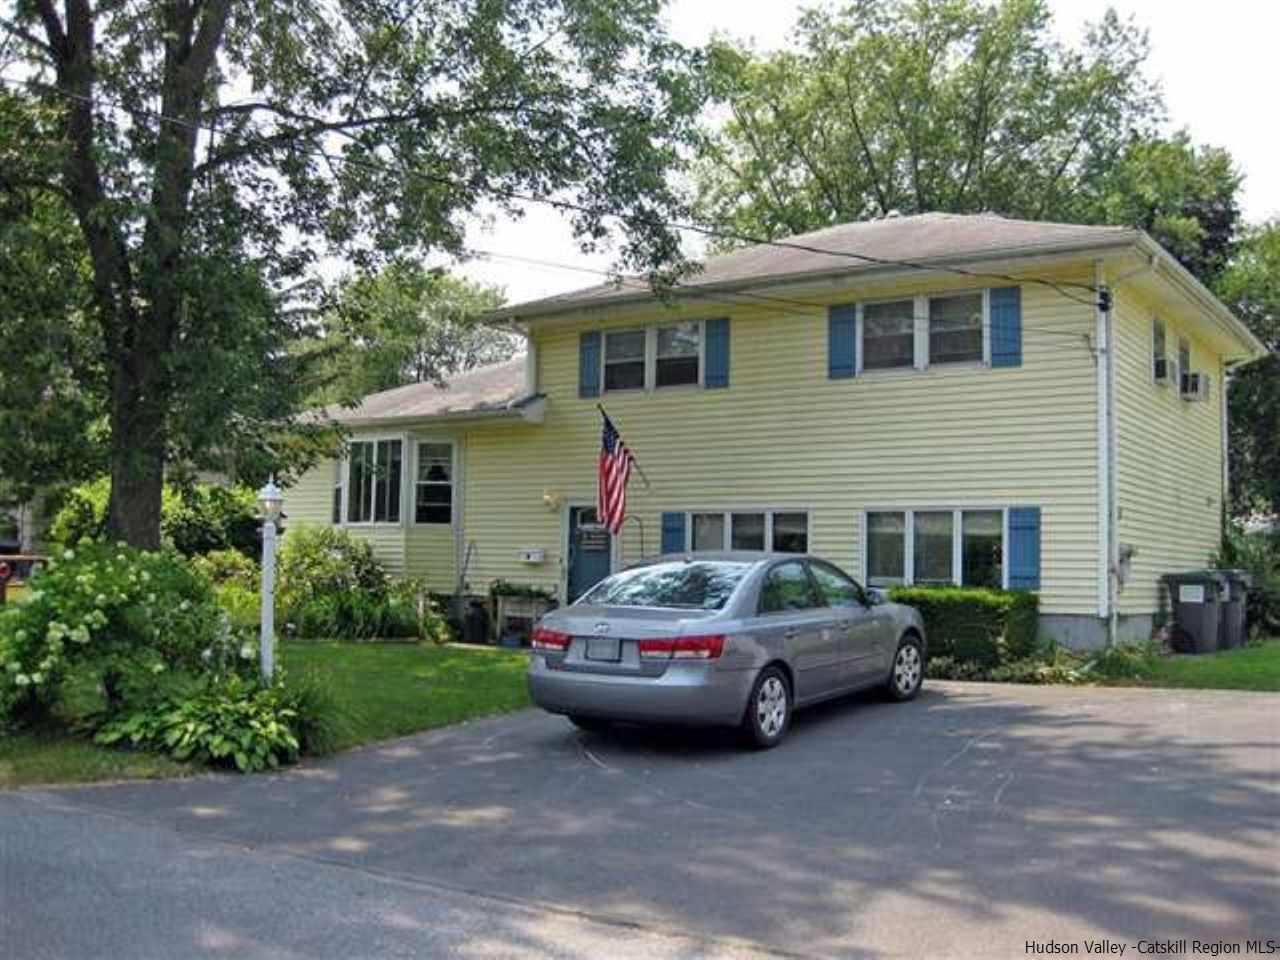 Single Family Home for Sale at 4 S Birchwood Drive 4 S Birchwood Drive Saugerties, New York 12477 United States